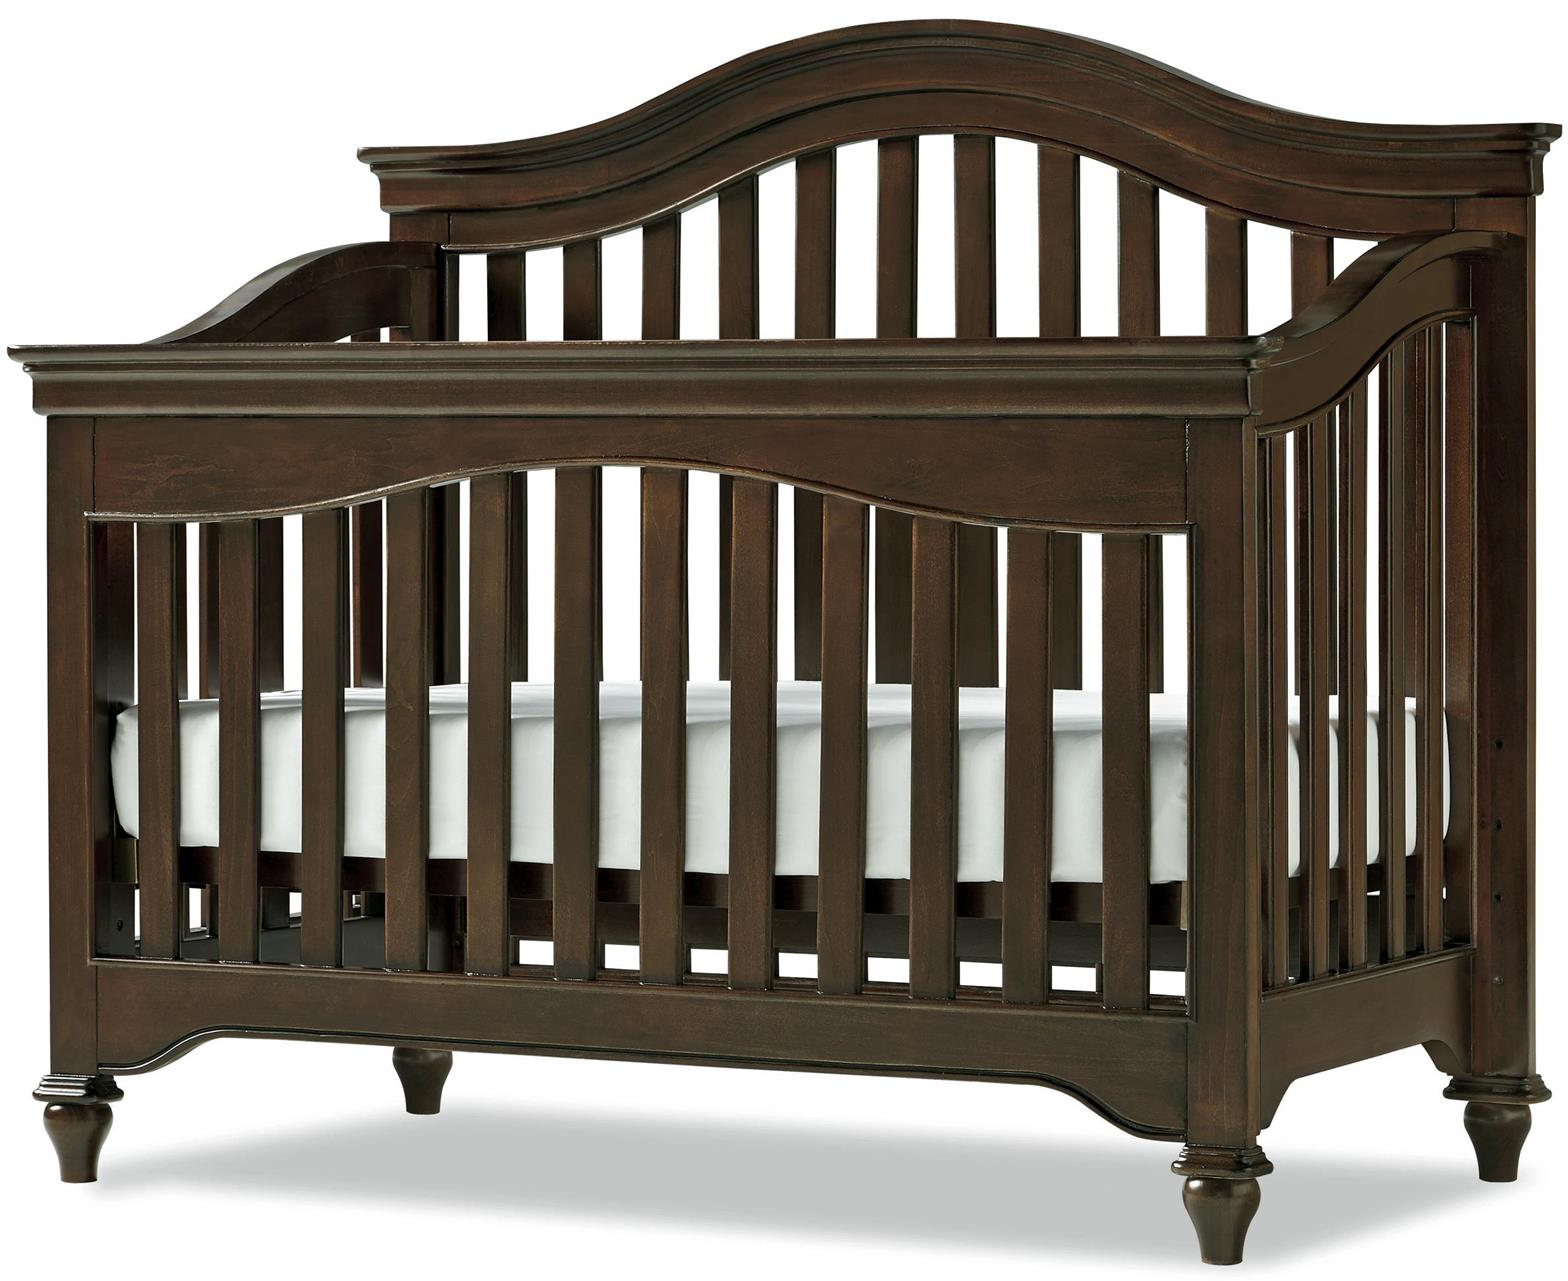 Smartstuff Classics 4.0 Convertible Crib to Full Bed - Item Number: 1312310+305+284+950-CONV